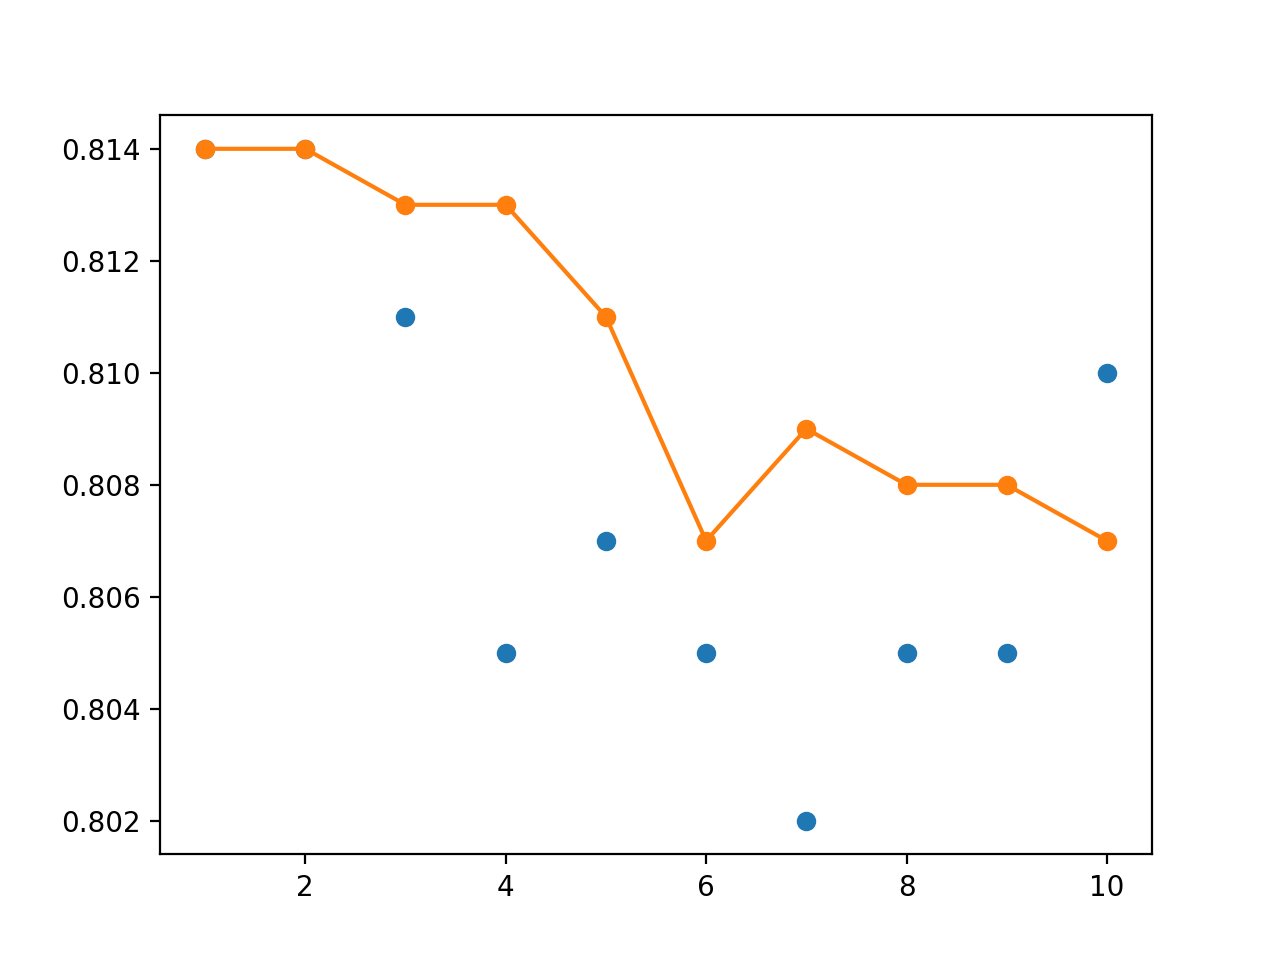 Line Plot of Single Model Test Performance (blue dots) and Model Weight Ensemble Test Performance (orange line)